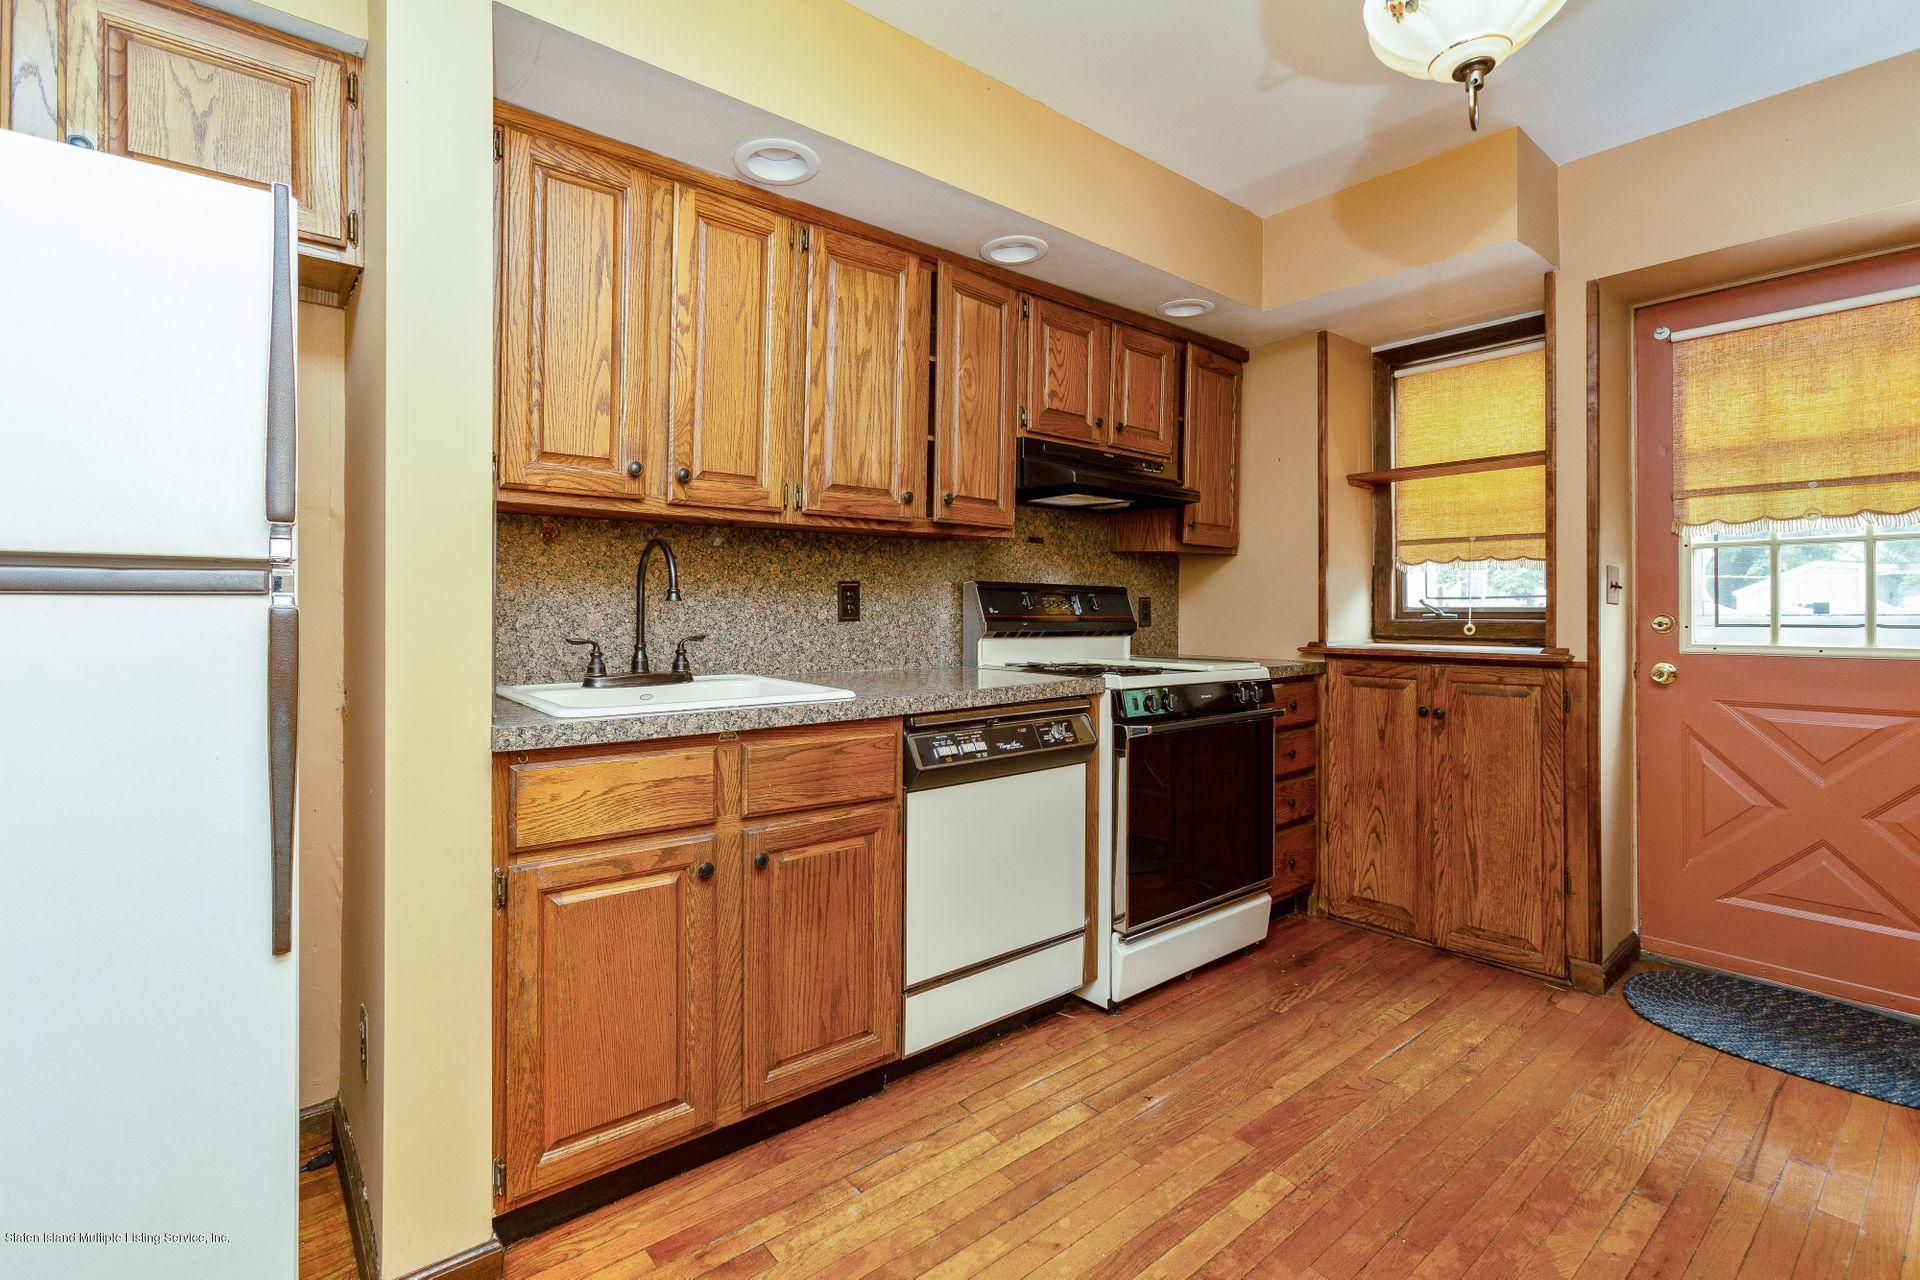 Single Family - Attached 83 Chester Avenue  Brooklyn, NY 11218, MLS-1131841-3